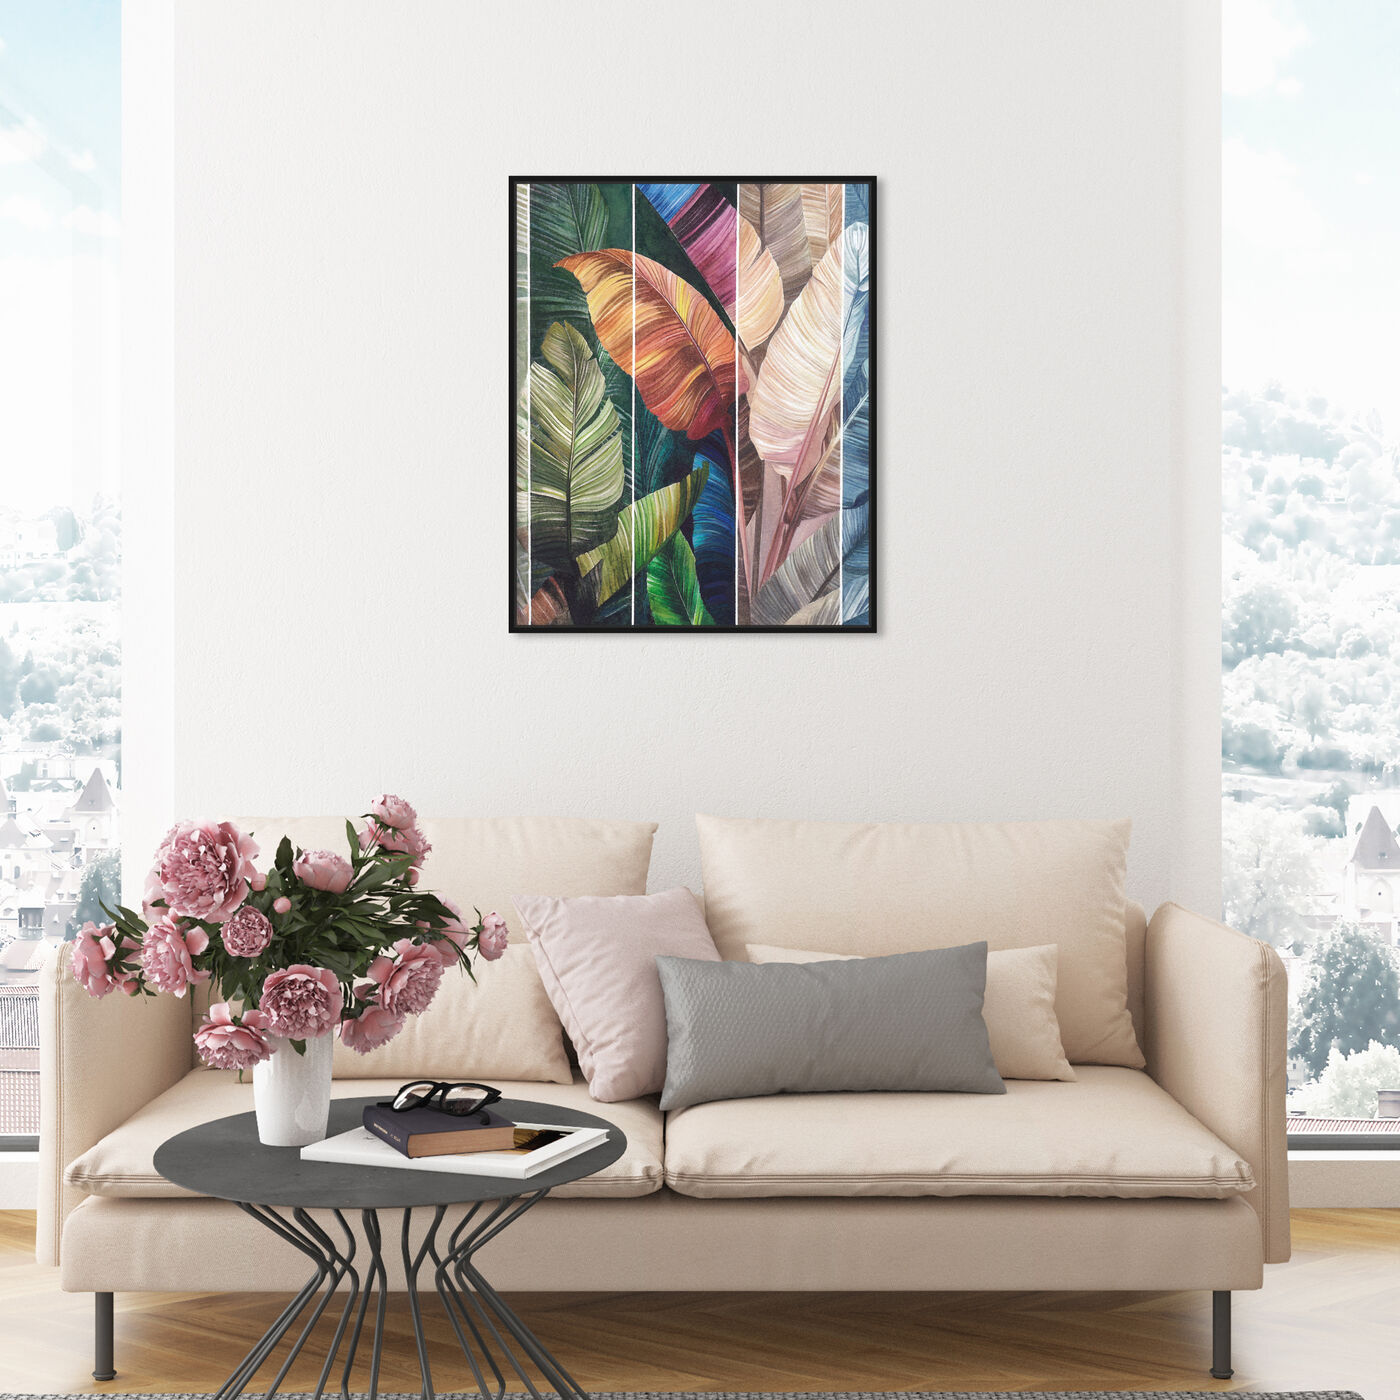 Hanging view of Tropical Leaves Views featuring floral and botanical and botanicals art.